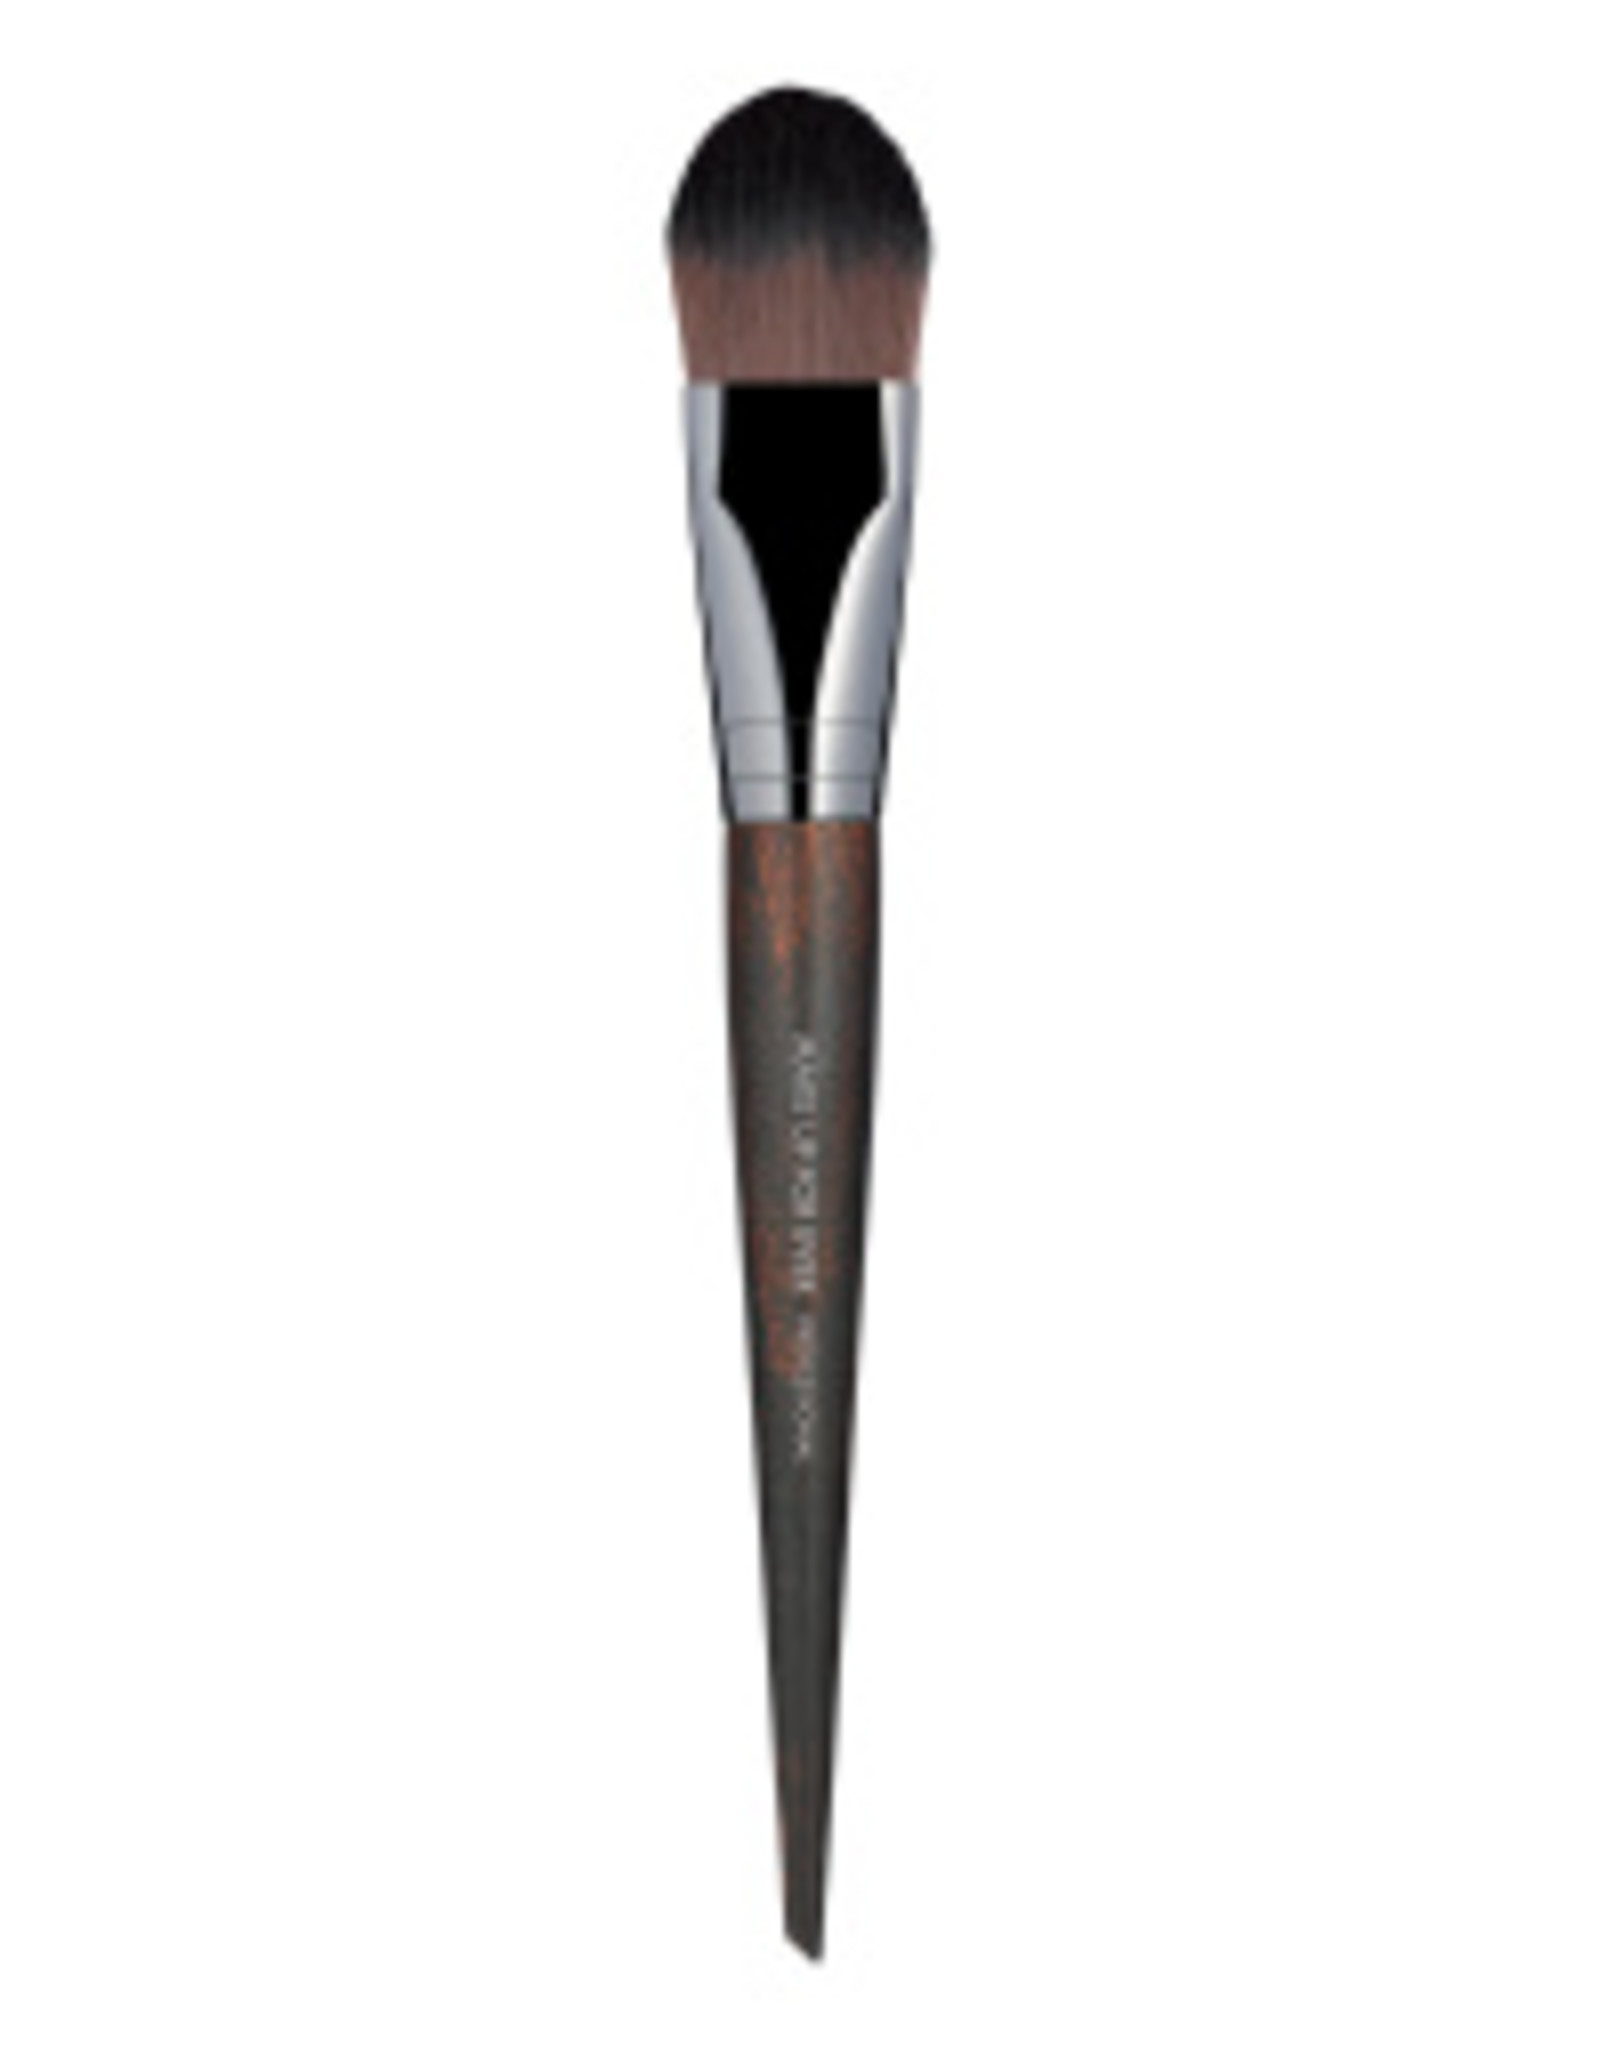 MUFE FOUNDATION BRUSH - SMALL    - SALES REFS 59104